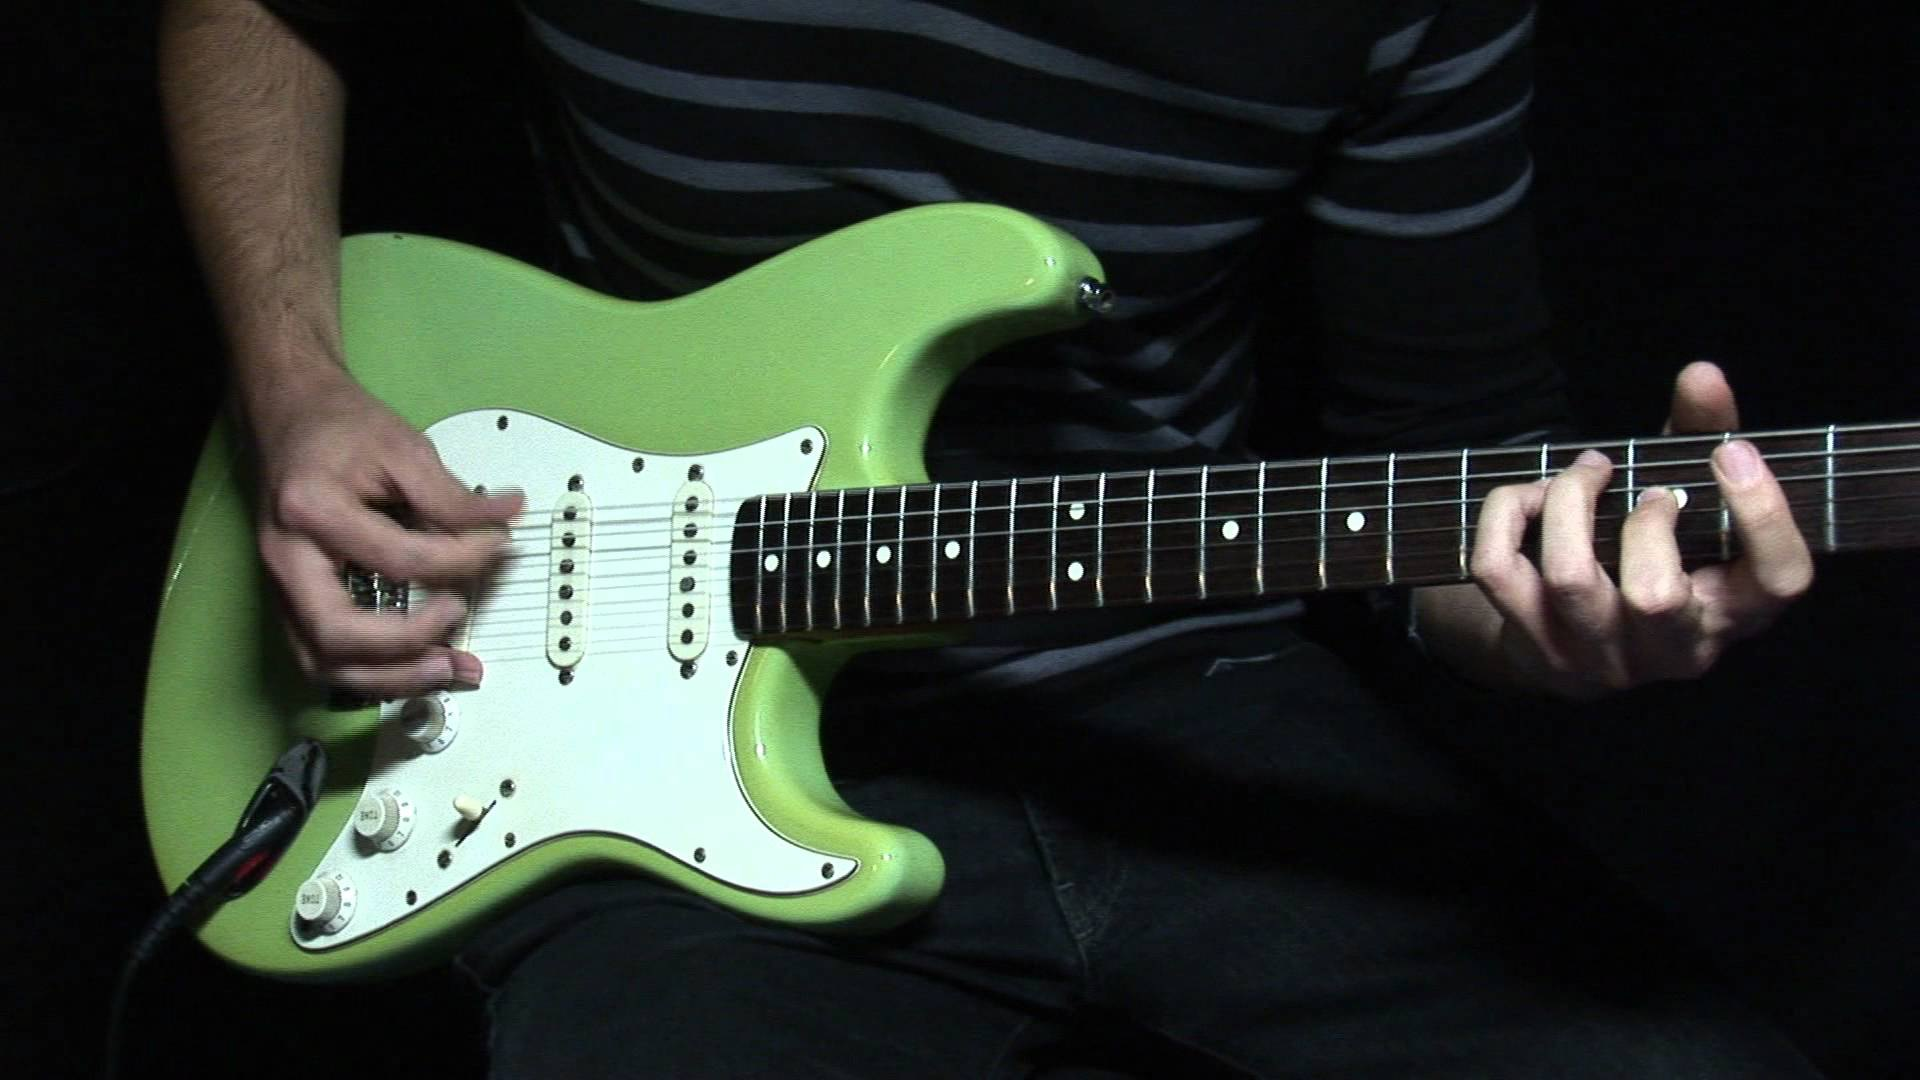 This post has info on the coolest fender guitars money can buy